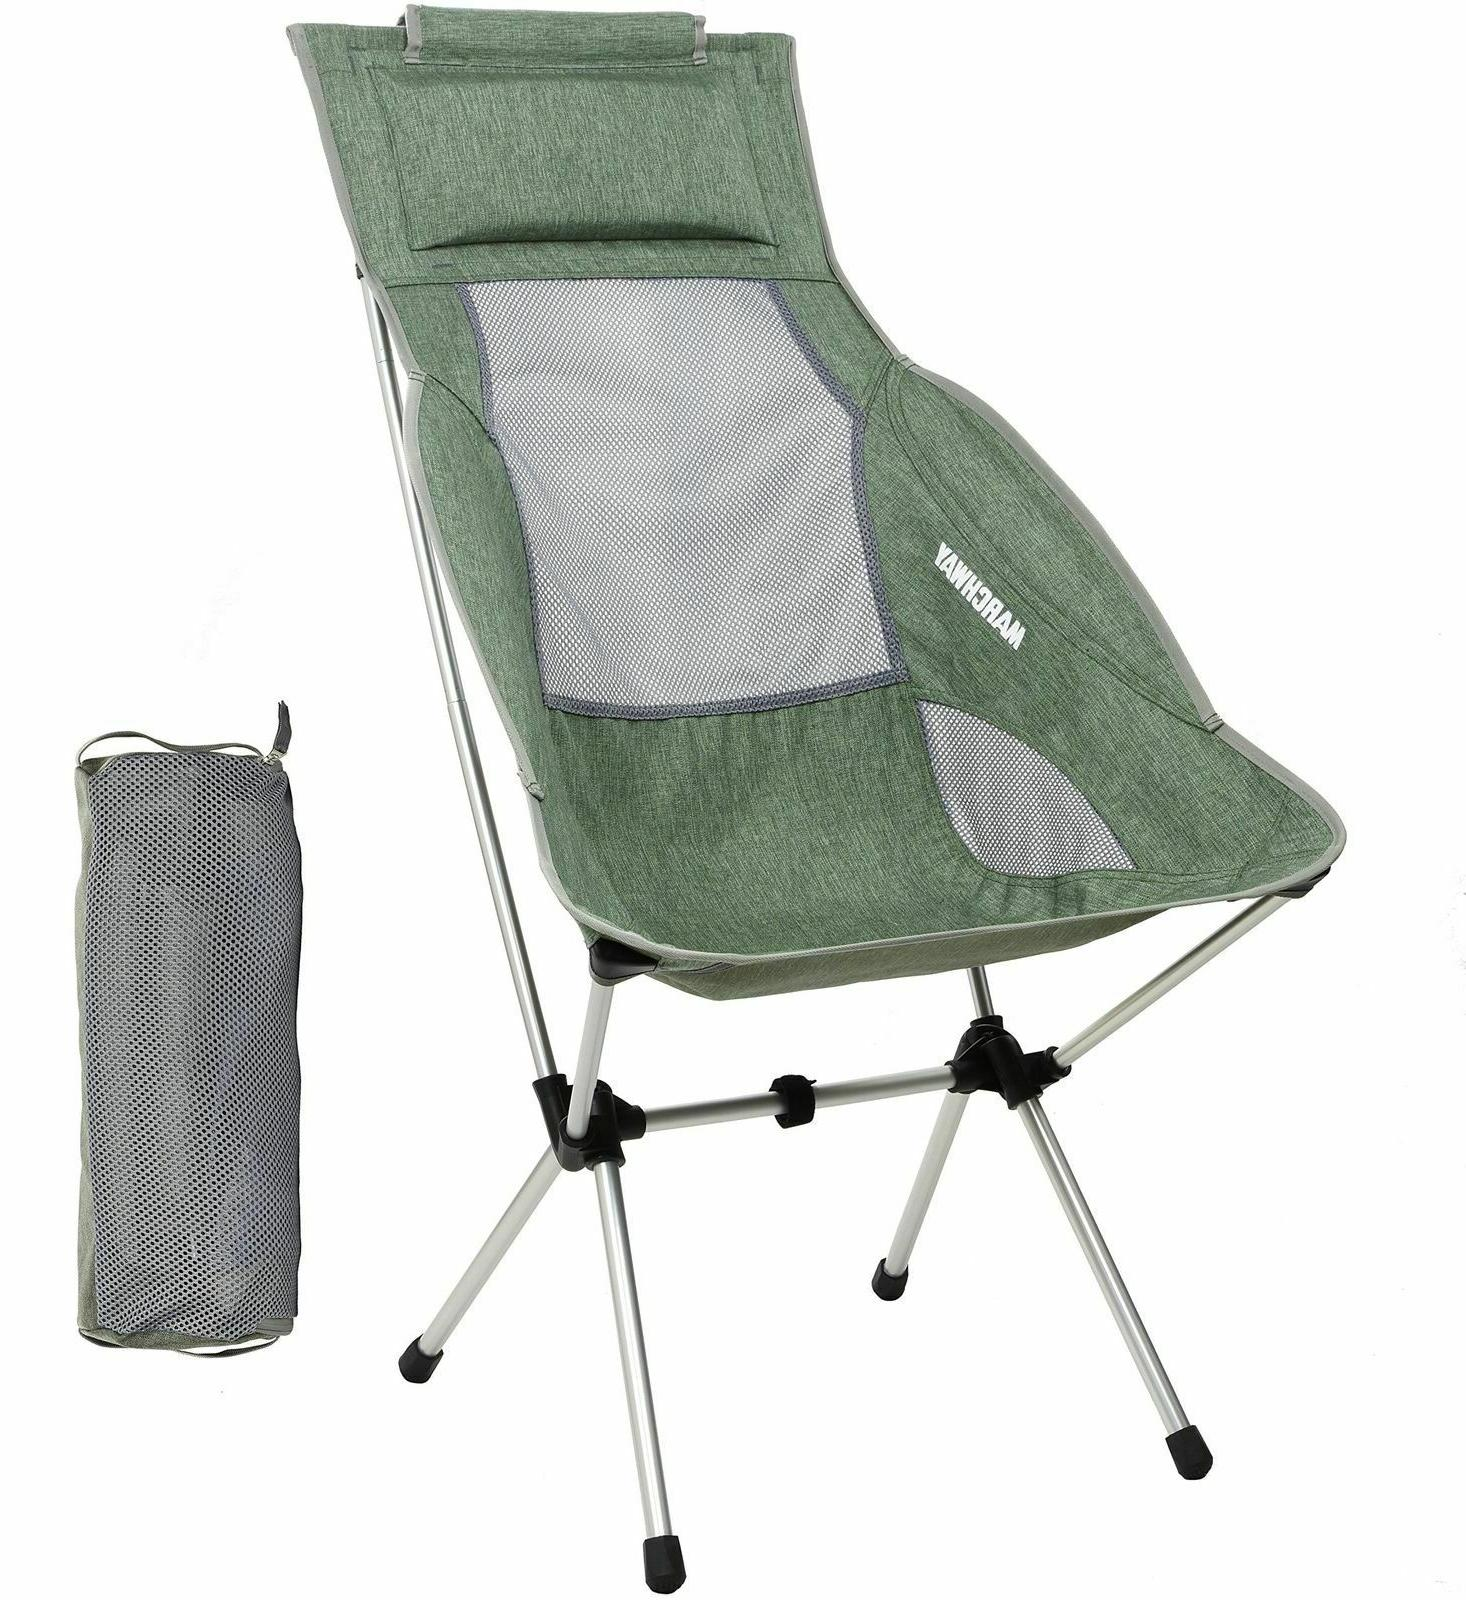 lightweight chairs folding high back camping